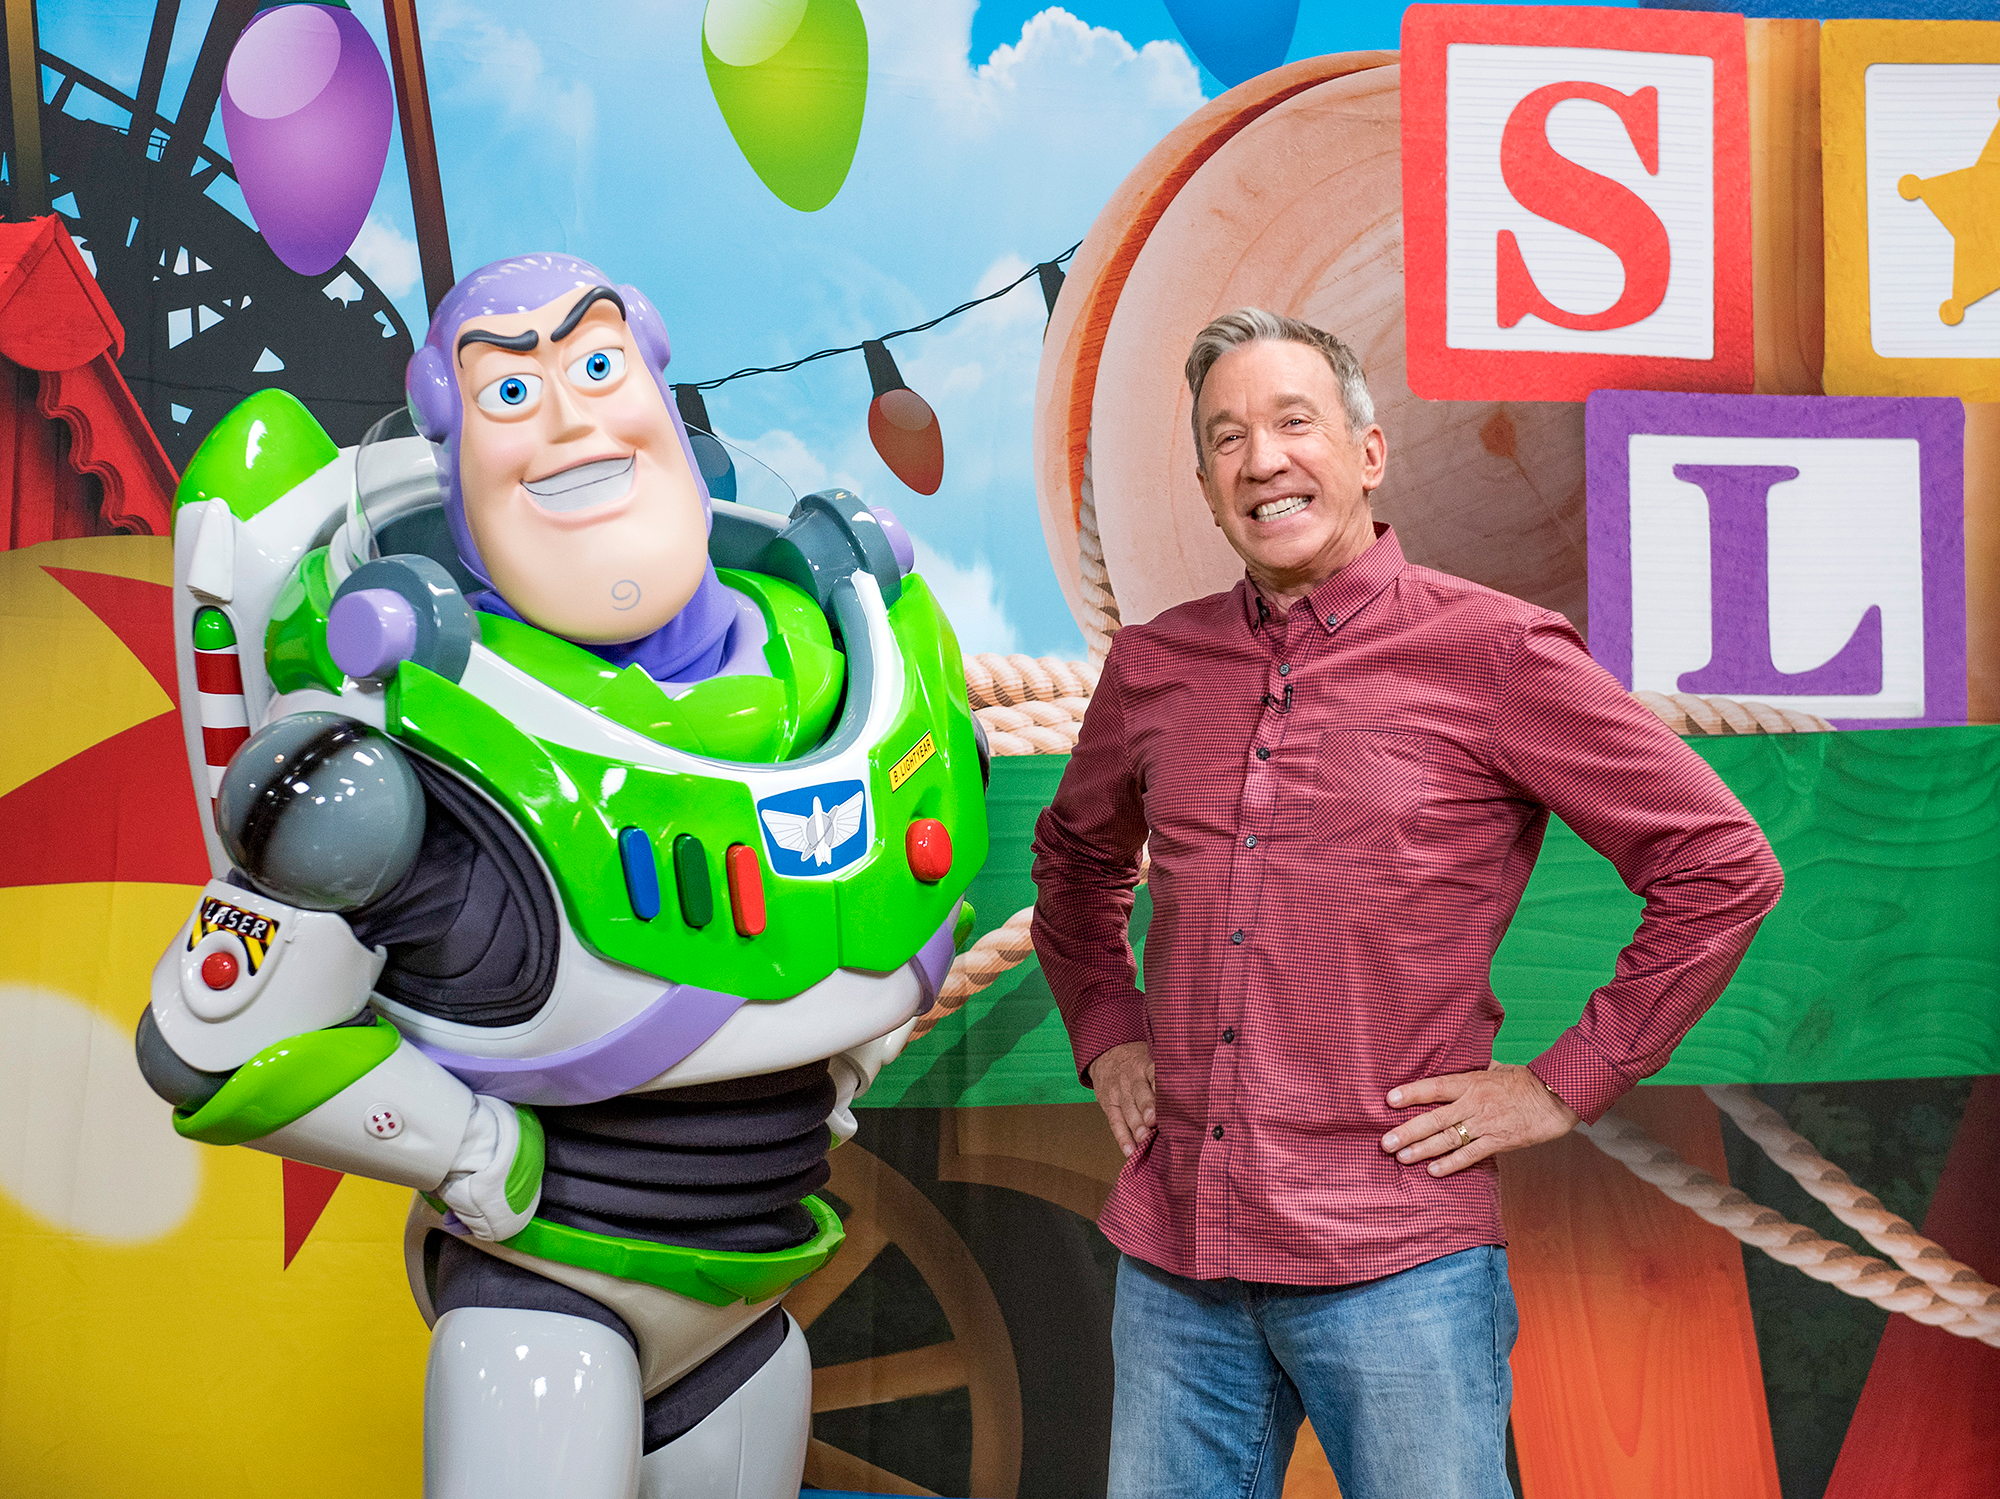 Tim Allen poses with Buzz Lightyear for Toy Story Land